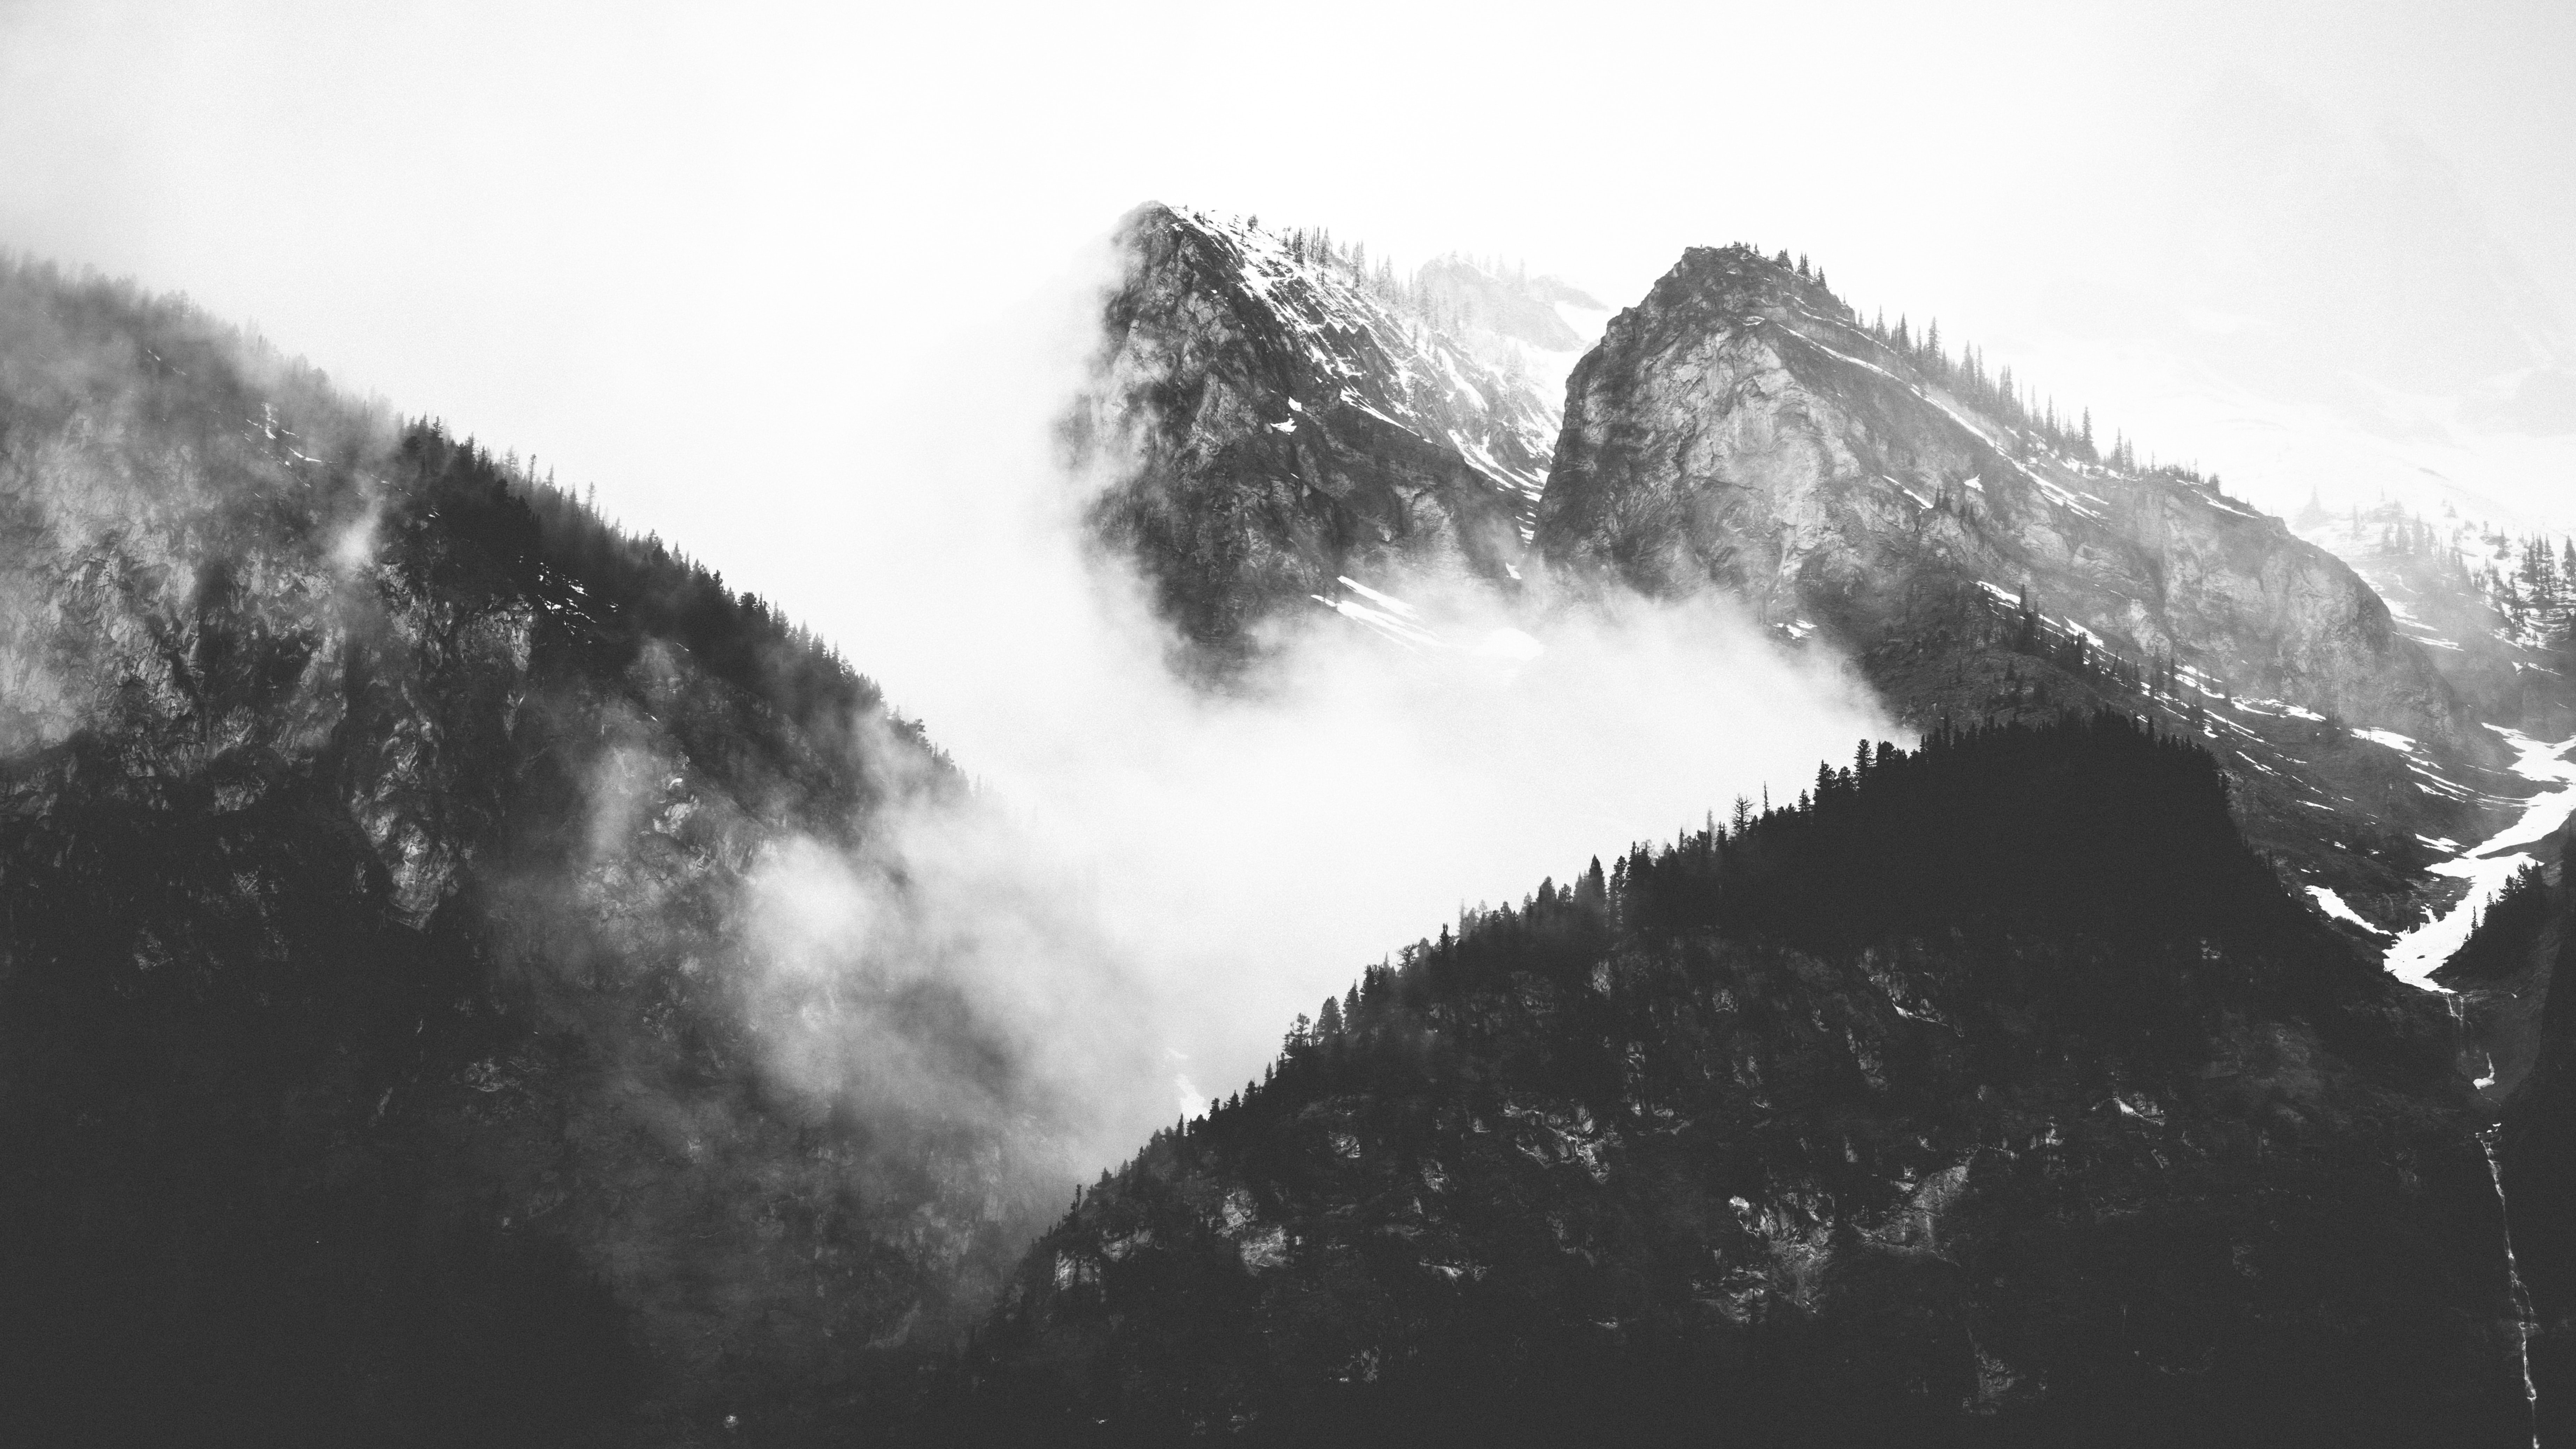 grayscale photo of mountain covered with trees and clouds